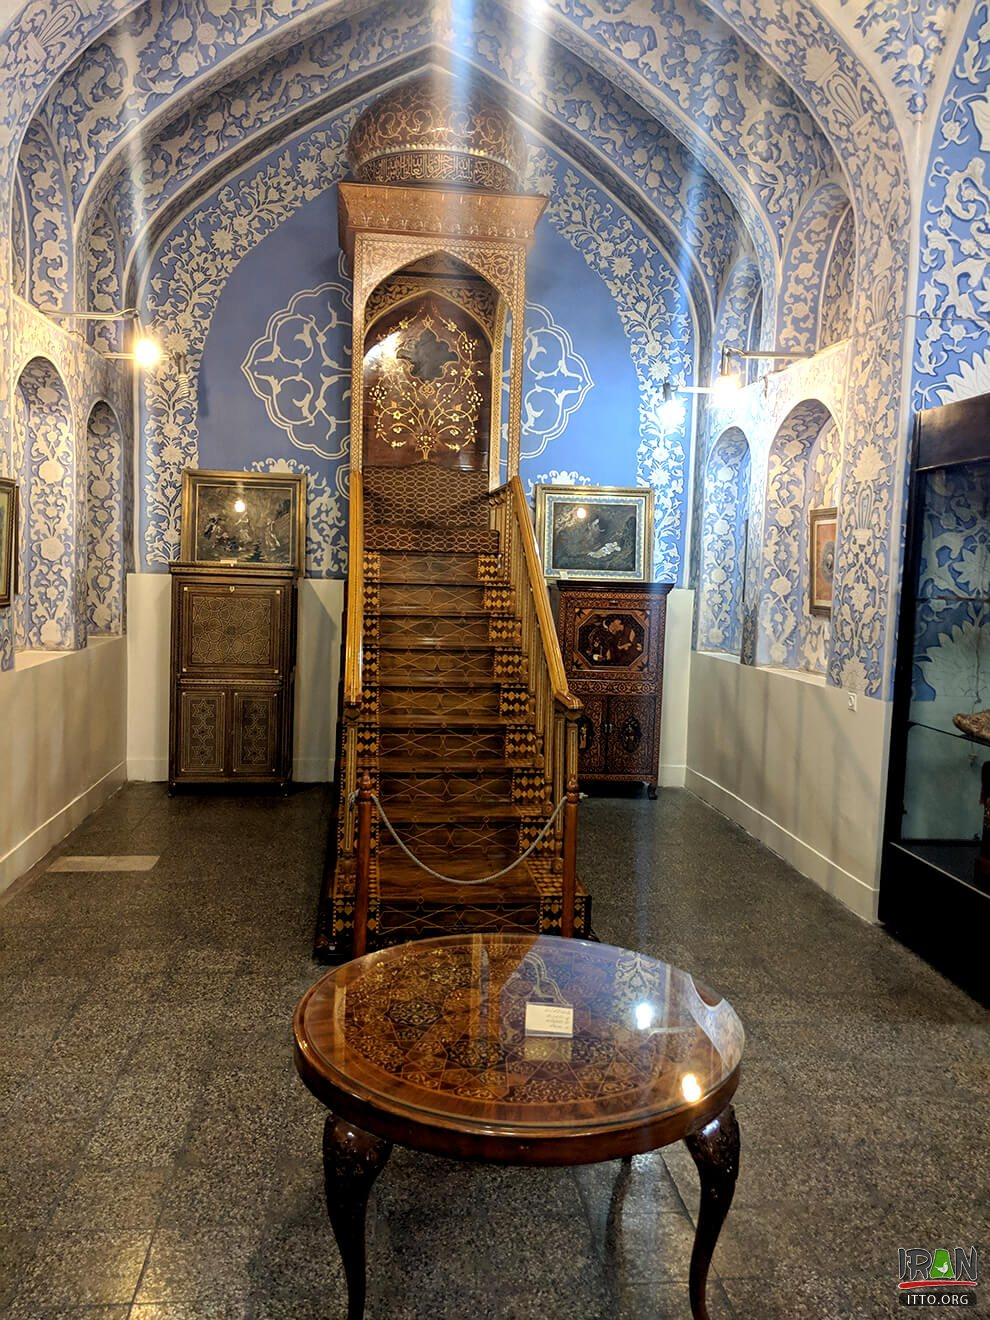 National Arts Museum of Iran,Tehran National Arts Museum,muzeye honar,tehran art museum,national art museum,موزه تهران,iran museums,iran museum,tehran museums,tehran museum